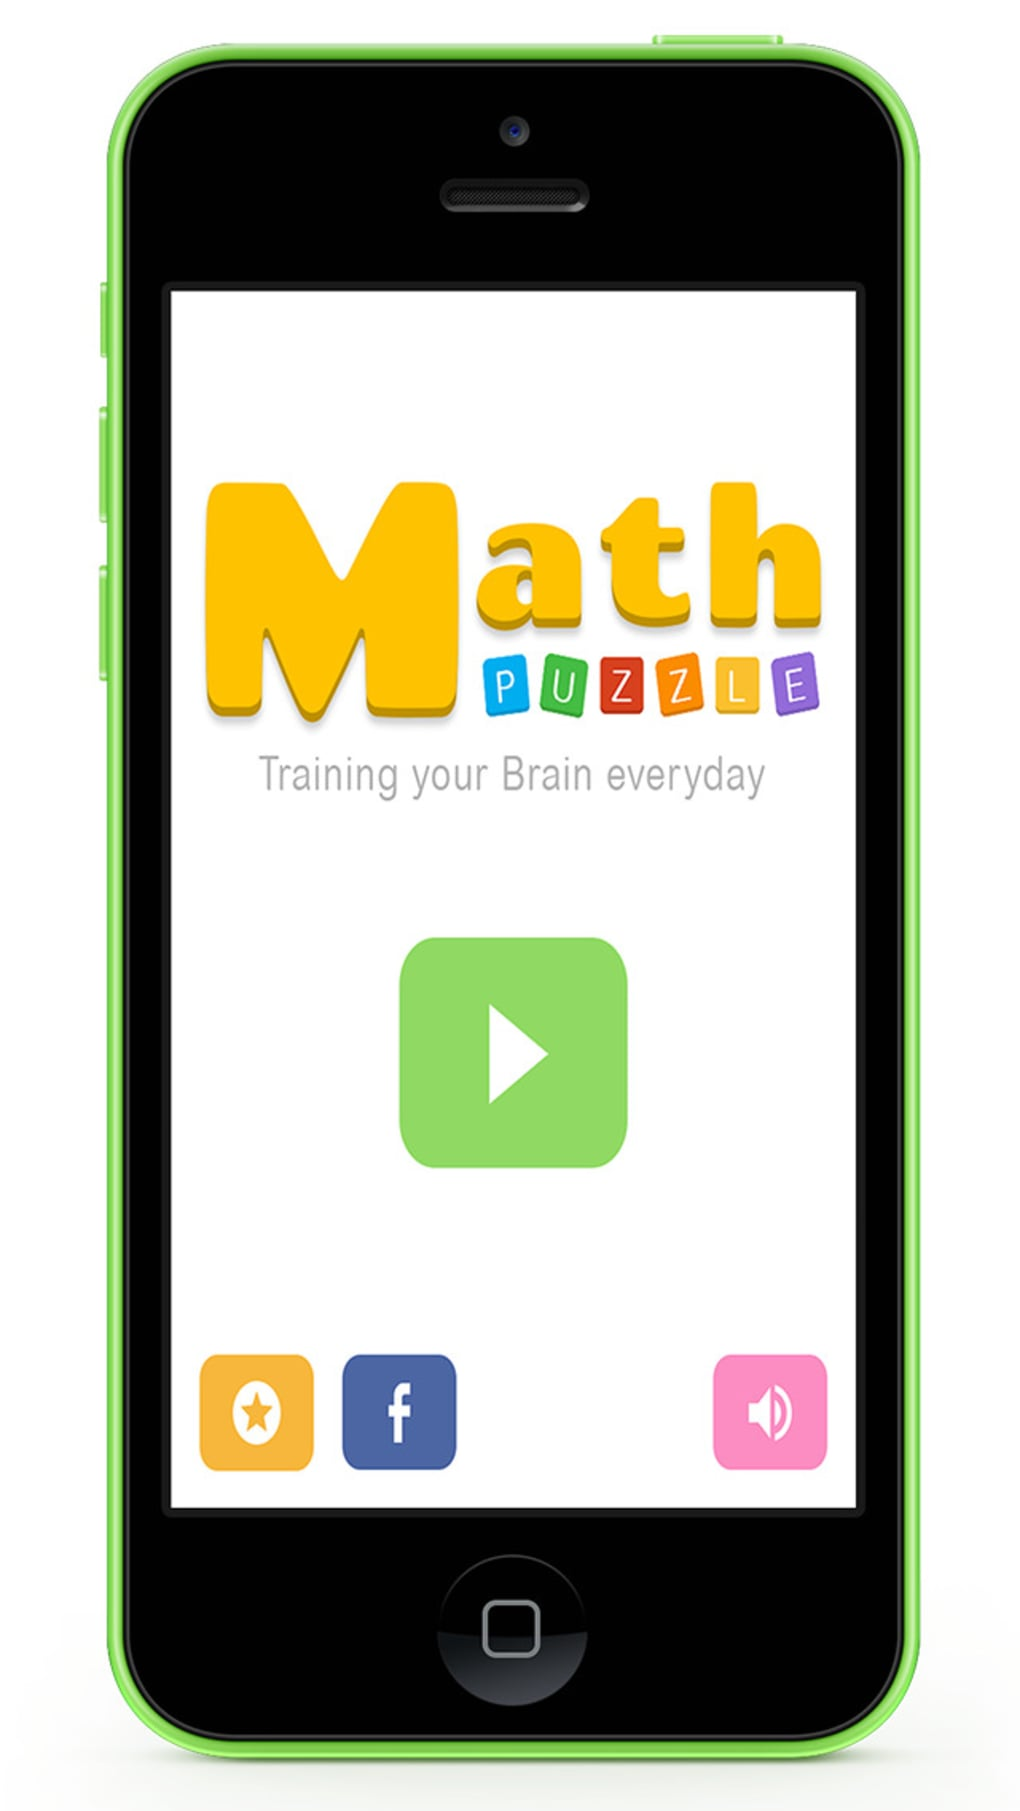 King of Math Workout for iPhone - Download